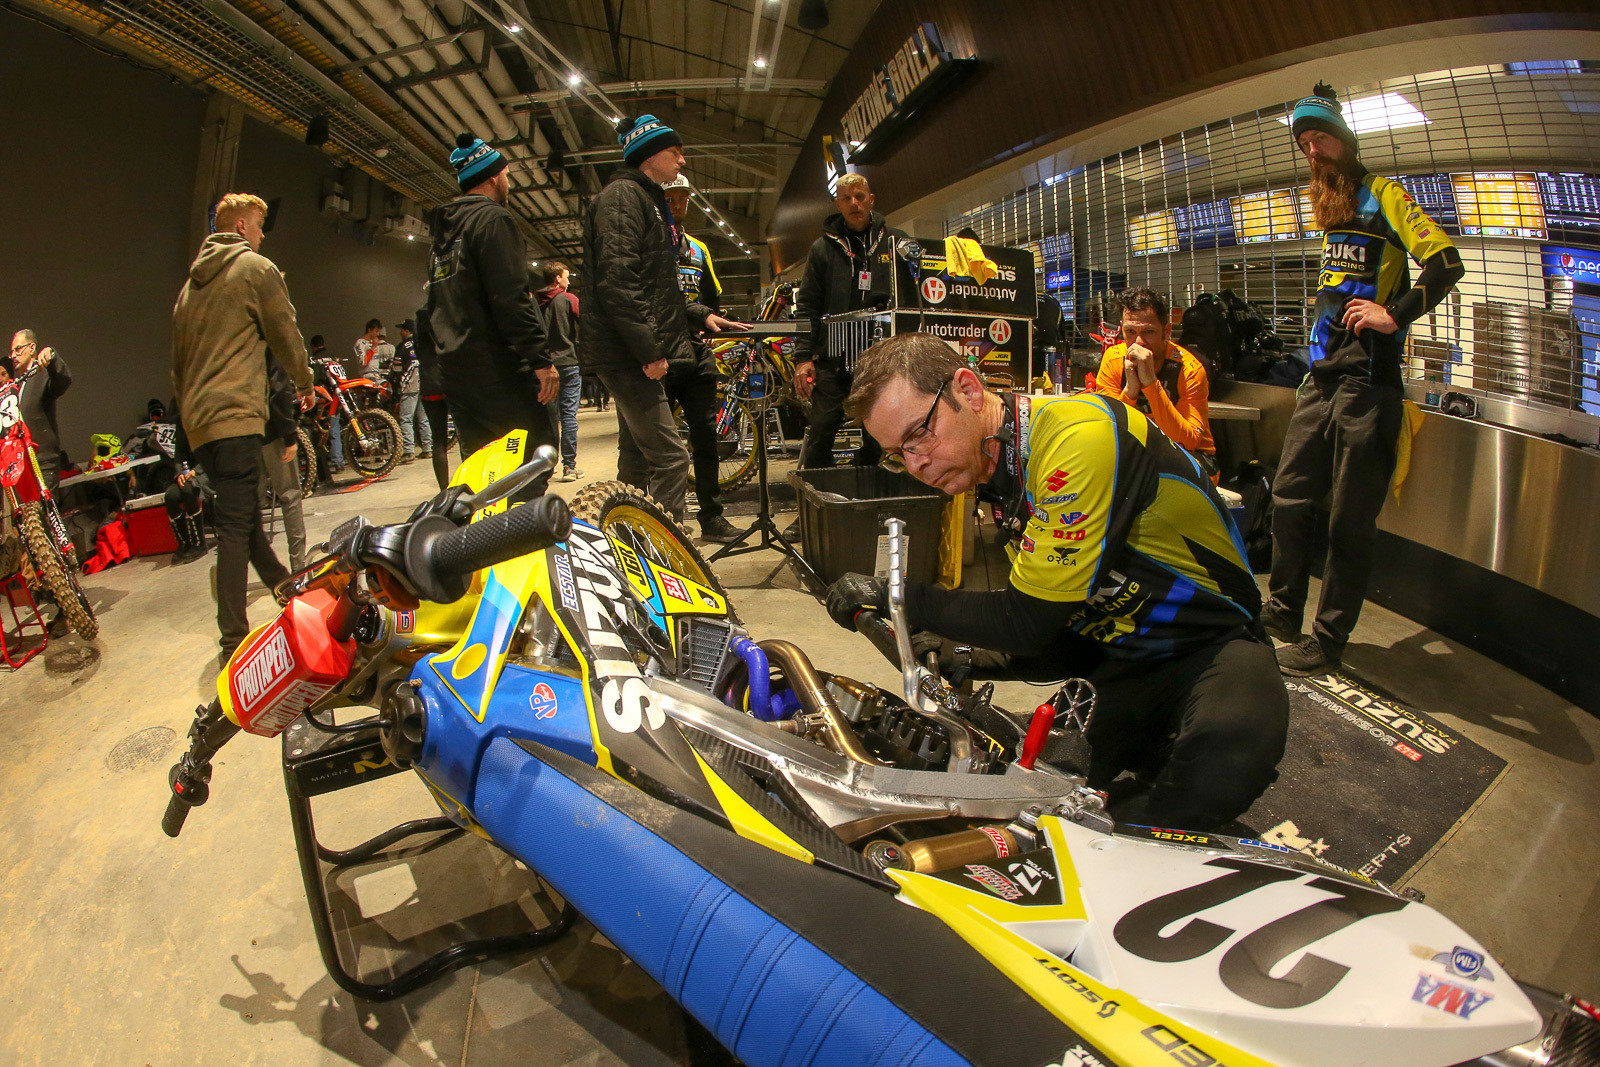 With the extreme cold outside (it was -9 early Saturday morning), all the teams opted to move inside to pit. Here, Dean Baker does a quick clutch swap on Chad Reed's Suzuki after the untimed practice.